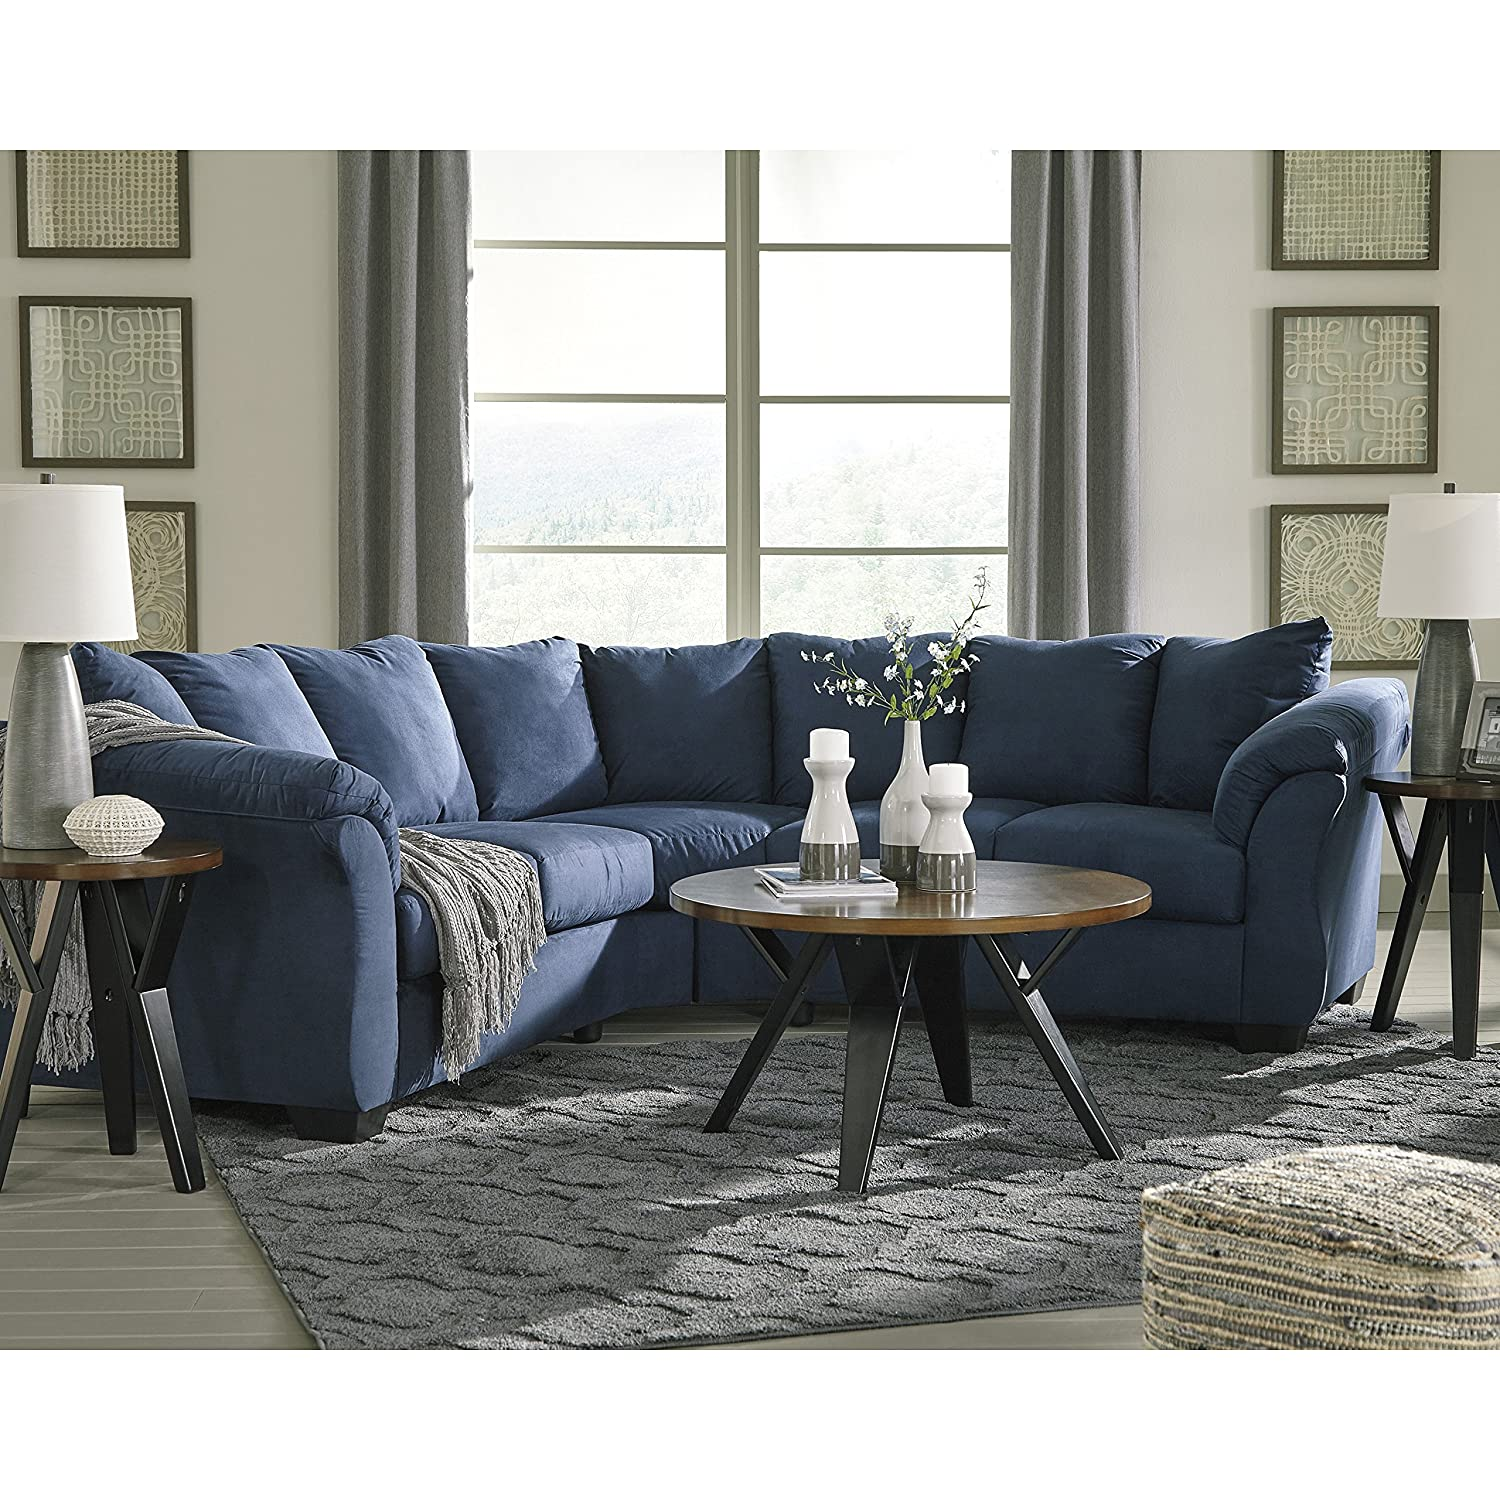 Amazon com flash furniture signature design by ashley darcy sectional in blue microfiber kitchen dining